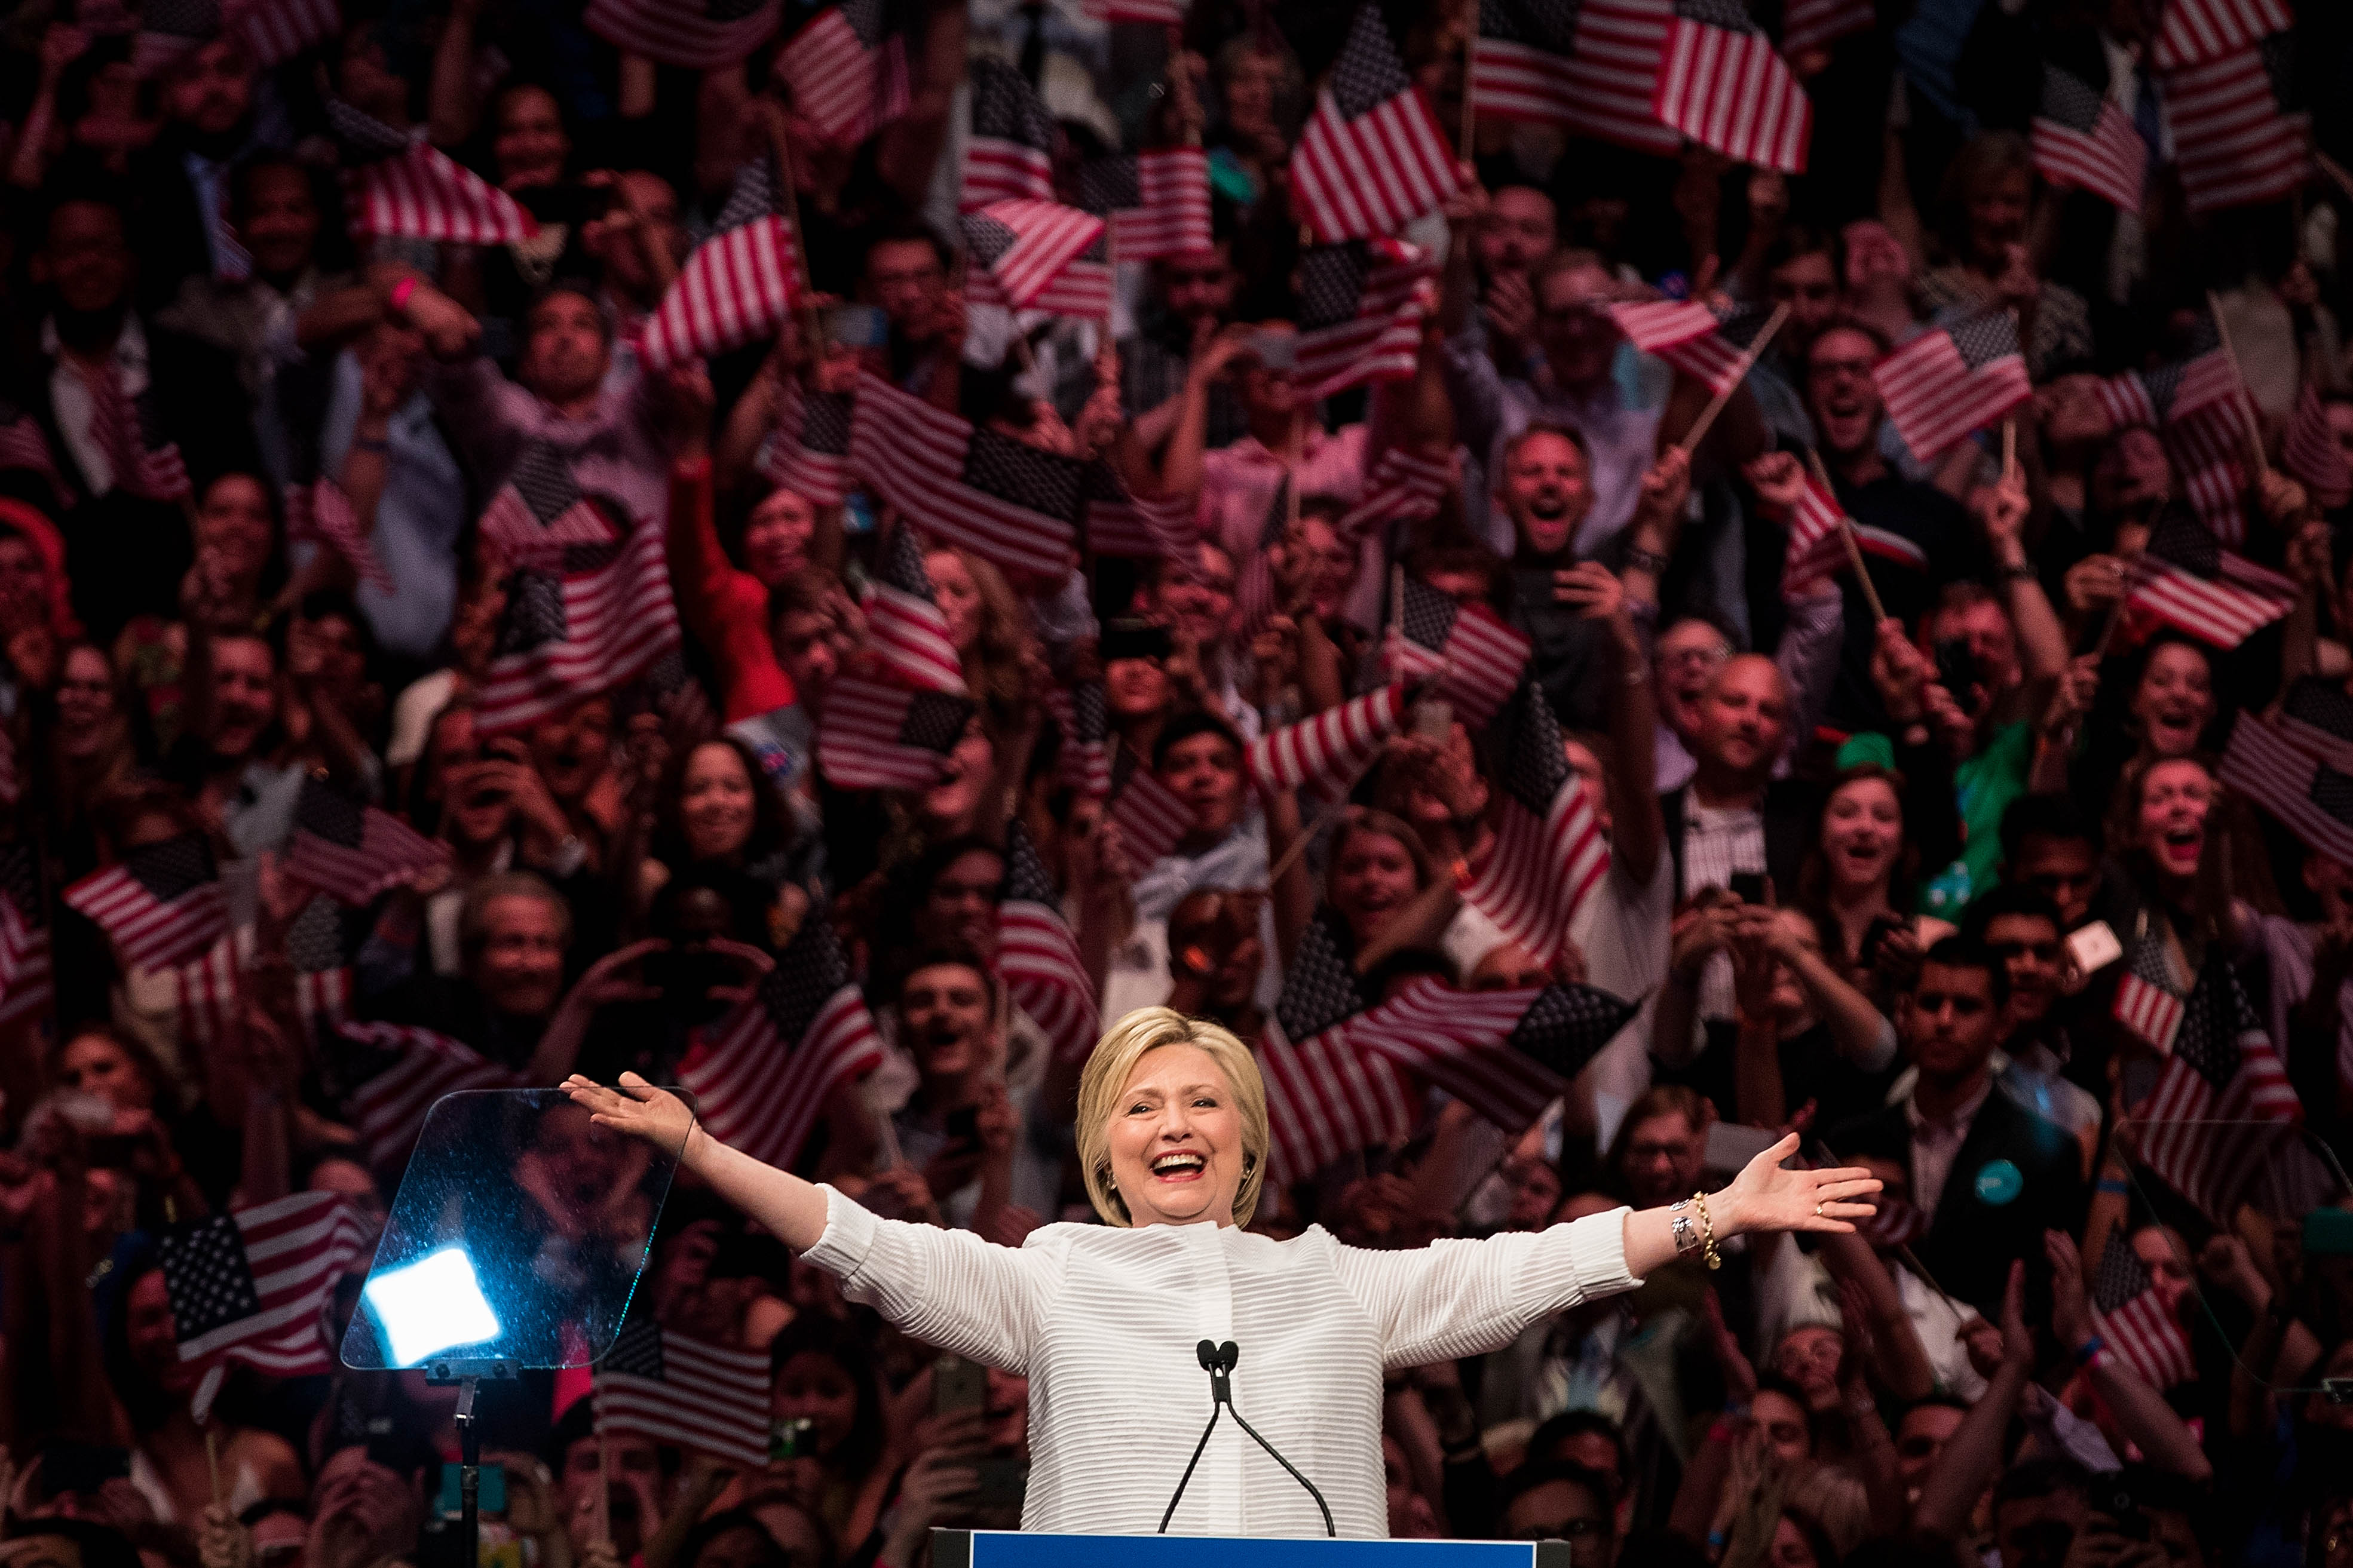 Democratic presidential candidate Hillary Clinton arrives onstage during a primary night rally at the Duggal Greenhouse in the Brooklyn Navy Yard, June 7, 2016 in Brooklyn